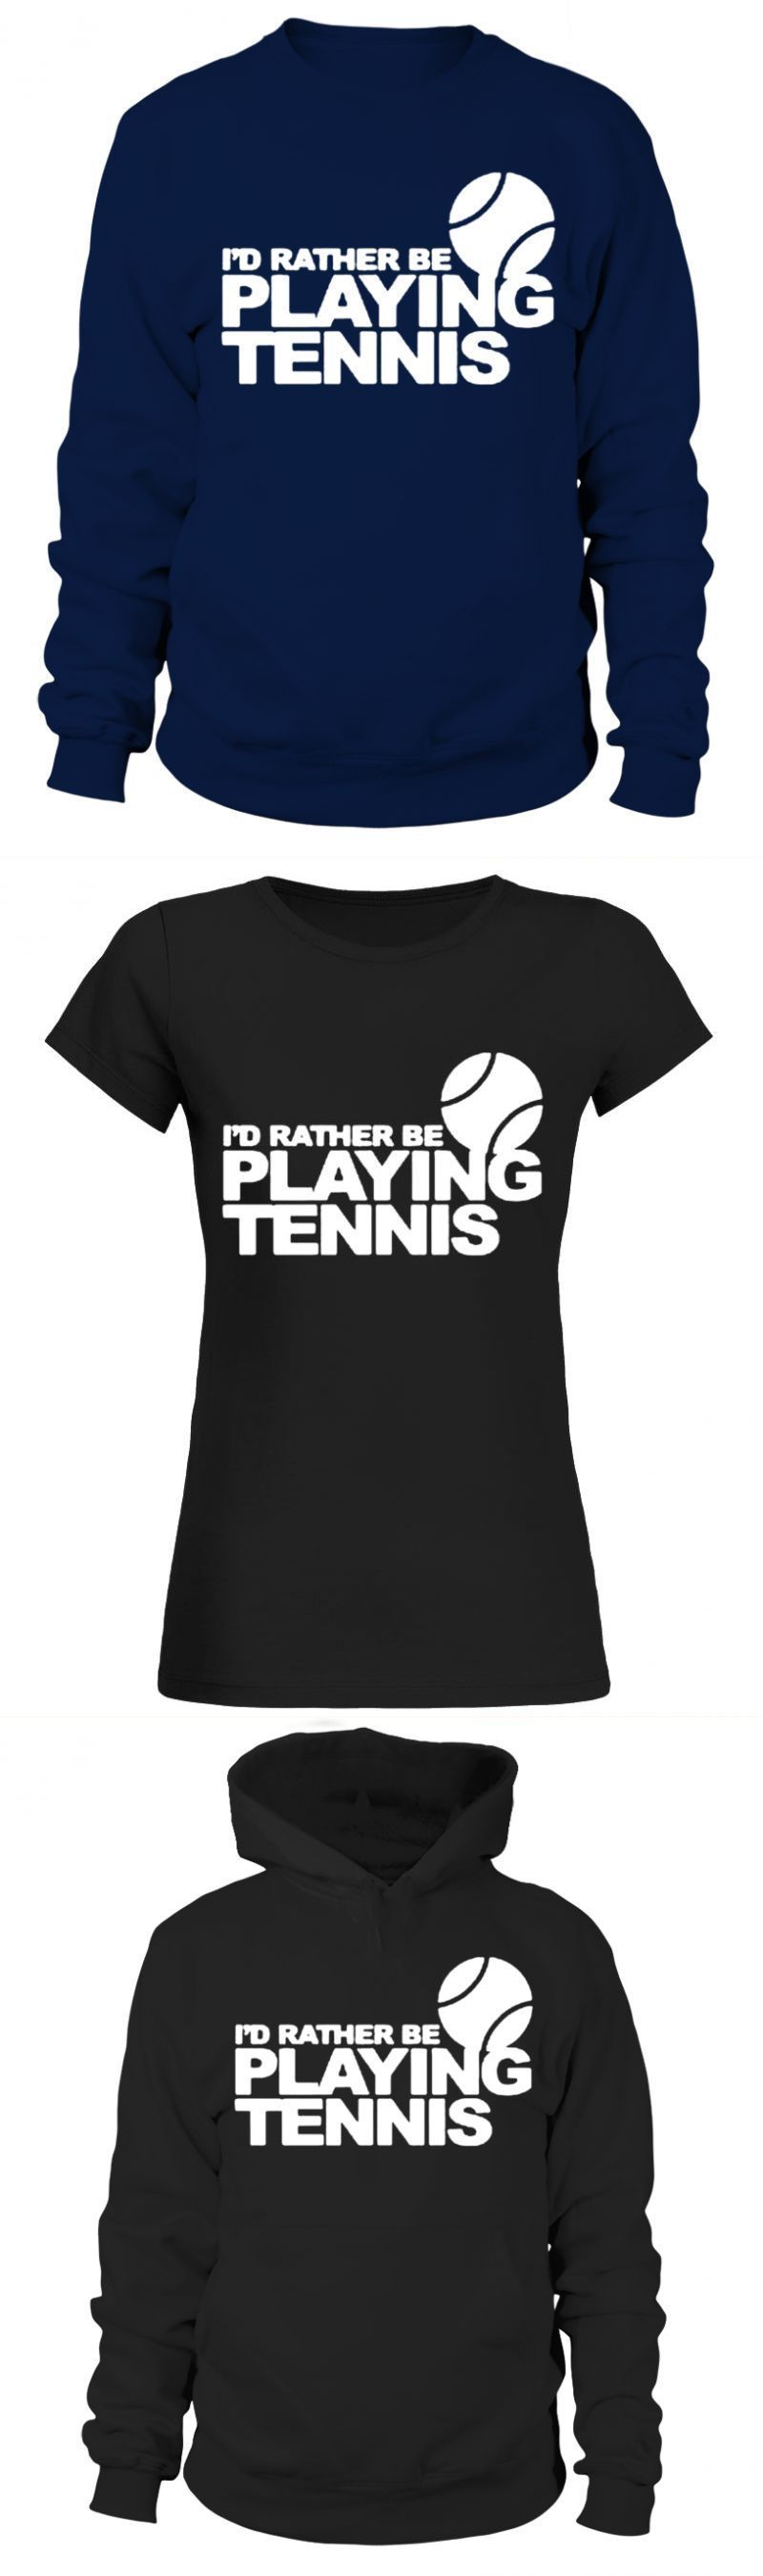 Usc Tennis T Shirt I D Rather Be Playing Tennis T Shirt Yale Tennis T Shirt Volleyball T Shirt Designs Volleyball Tshirts Team T Shirts